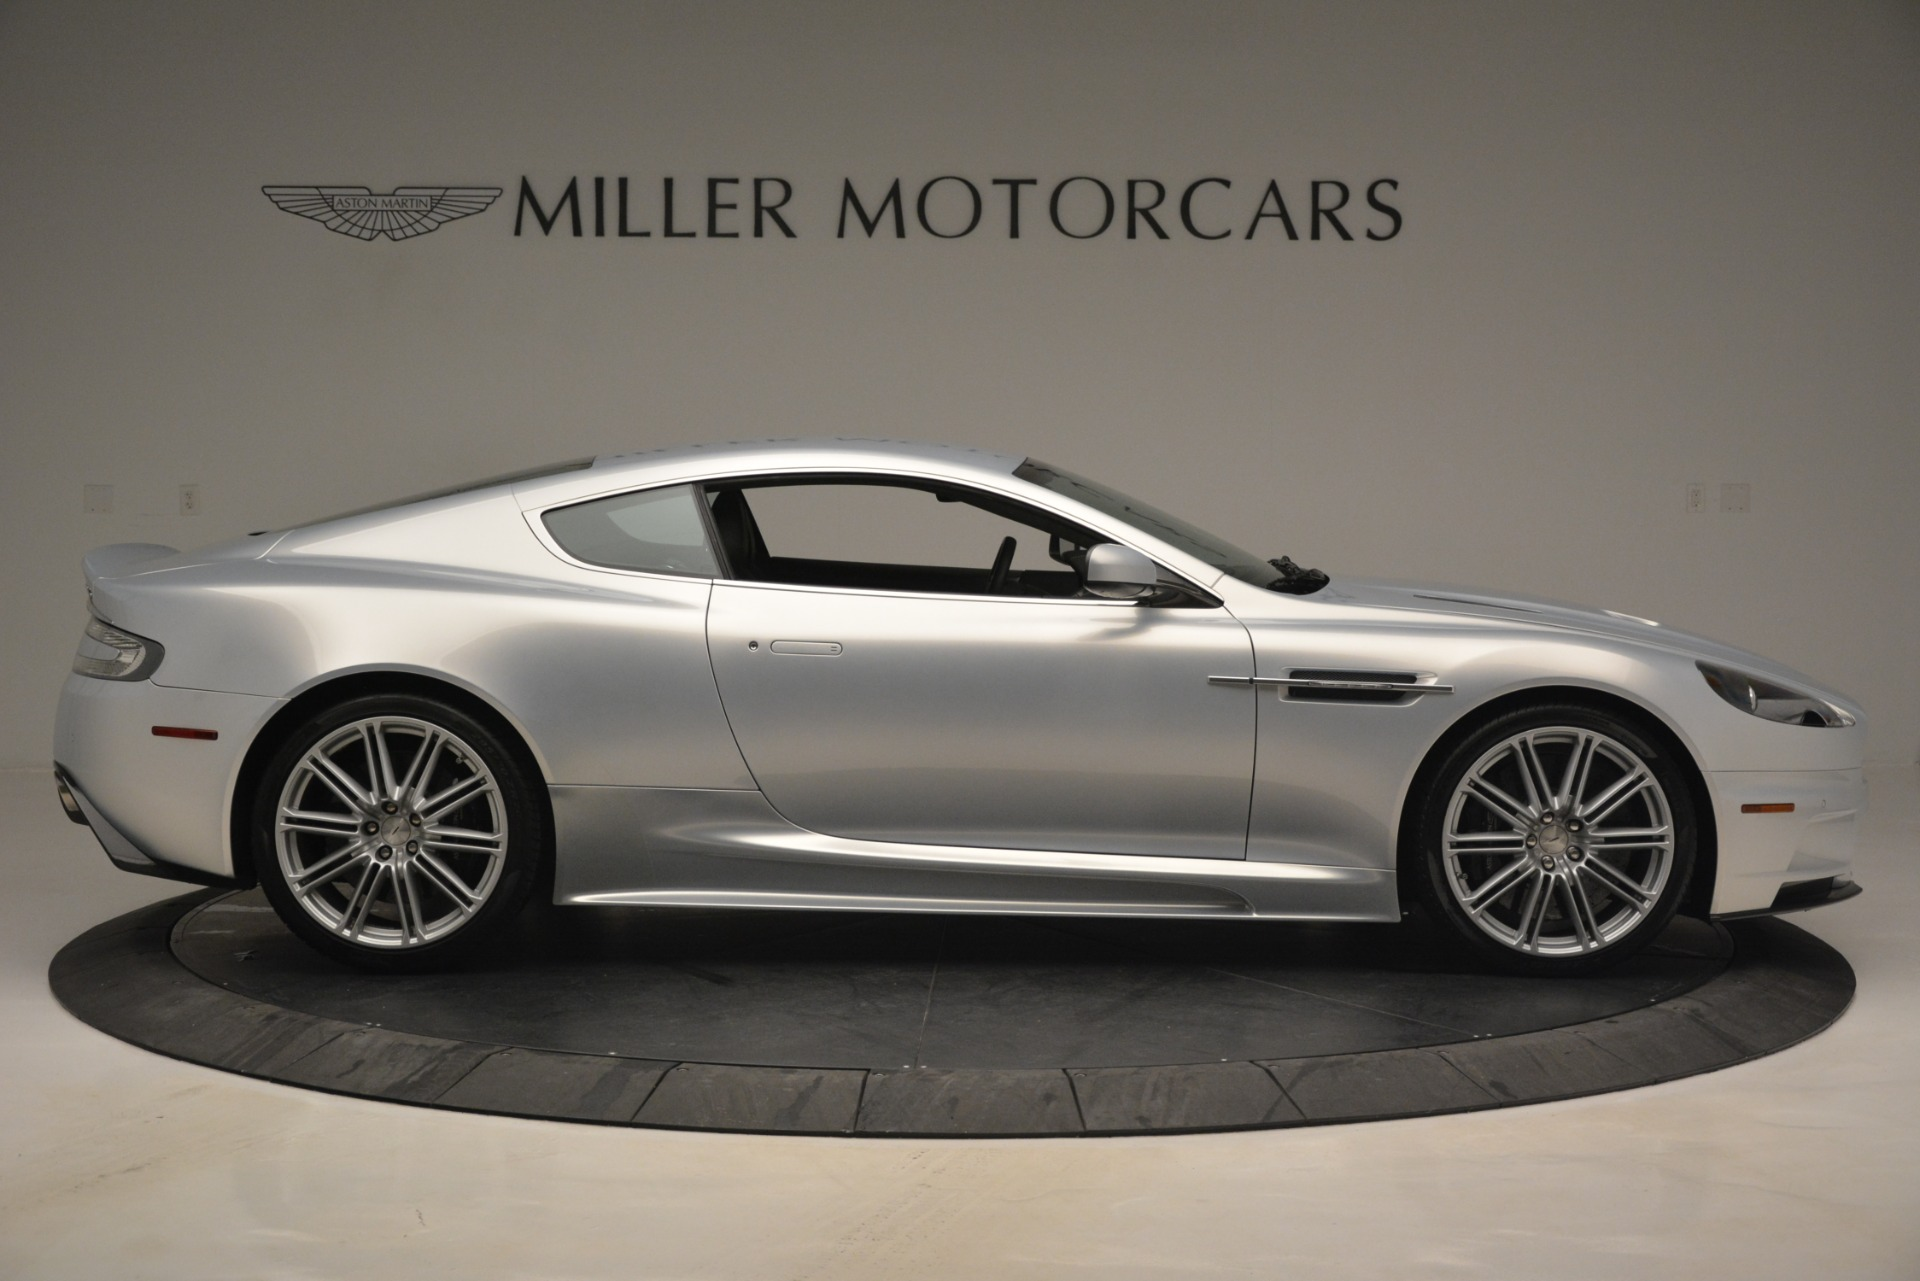 Used 2009 Aston Martin DBS Coupe For Sale In Greenwich, CT 3033_p9